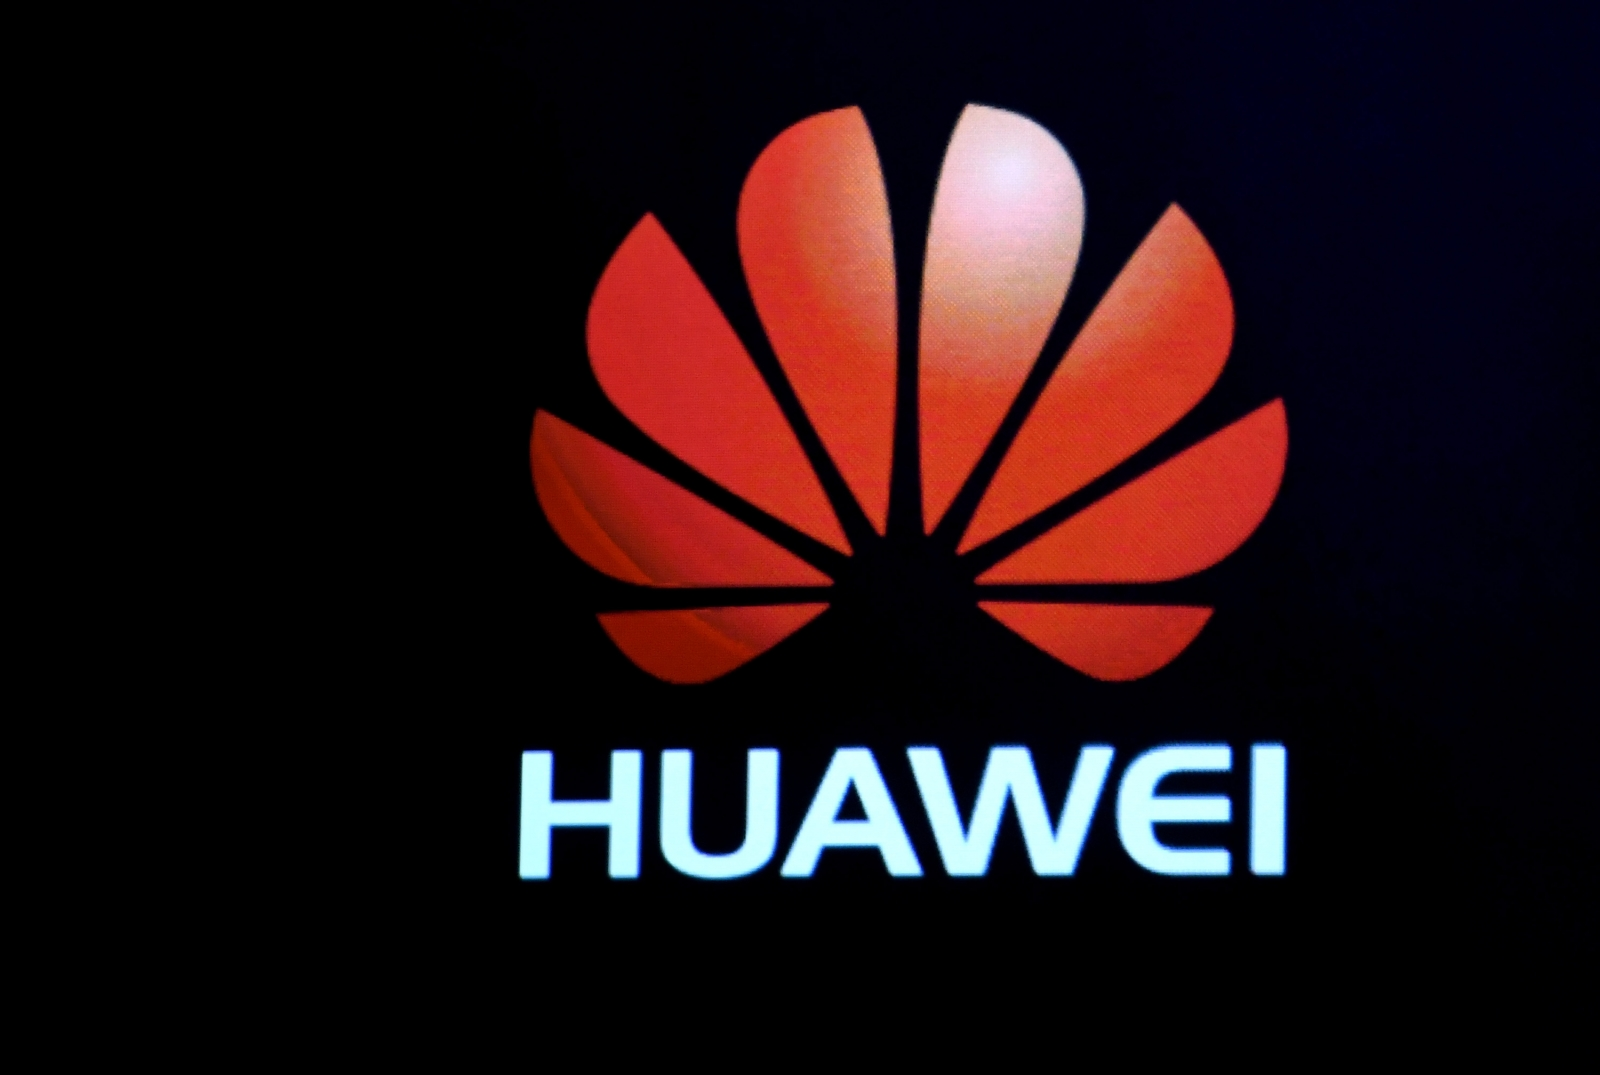 Huawei sends invite for 26 February event